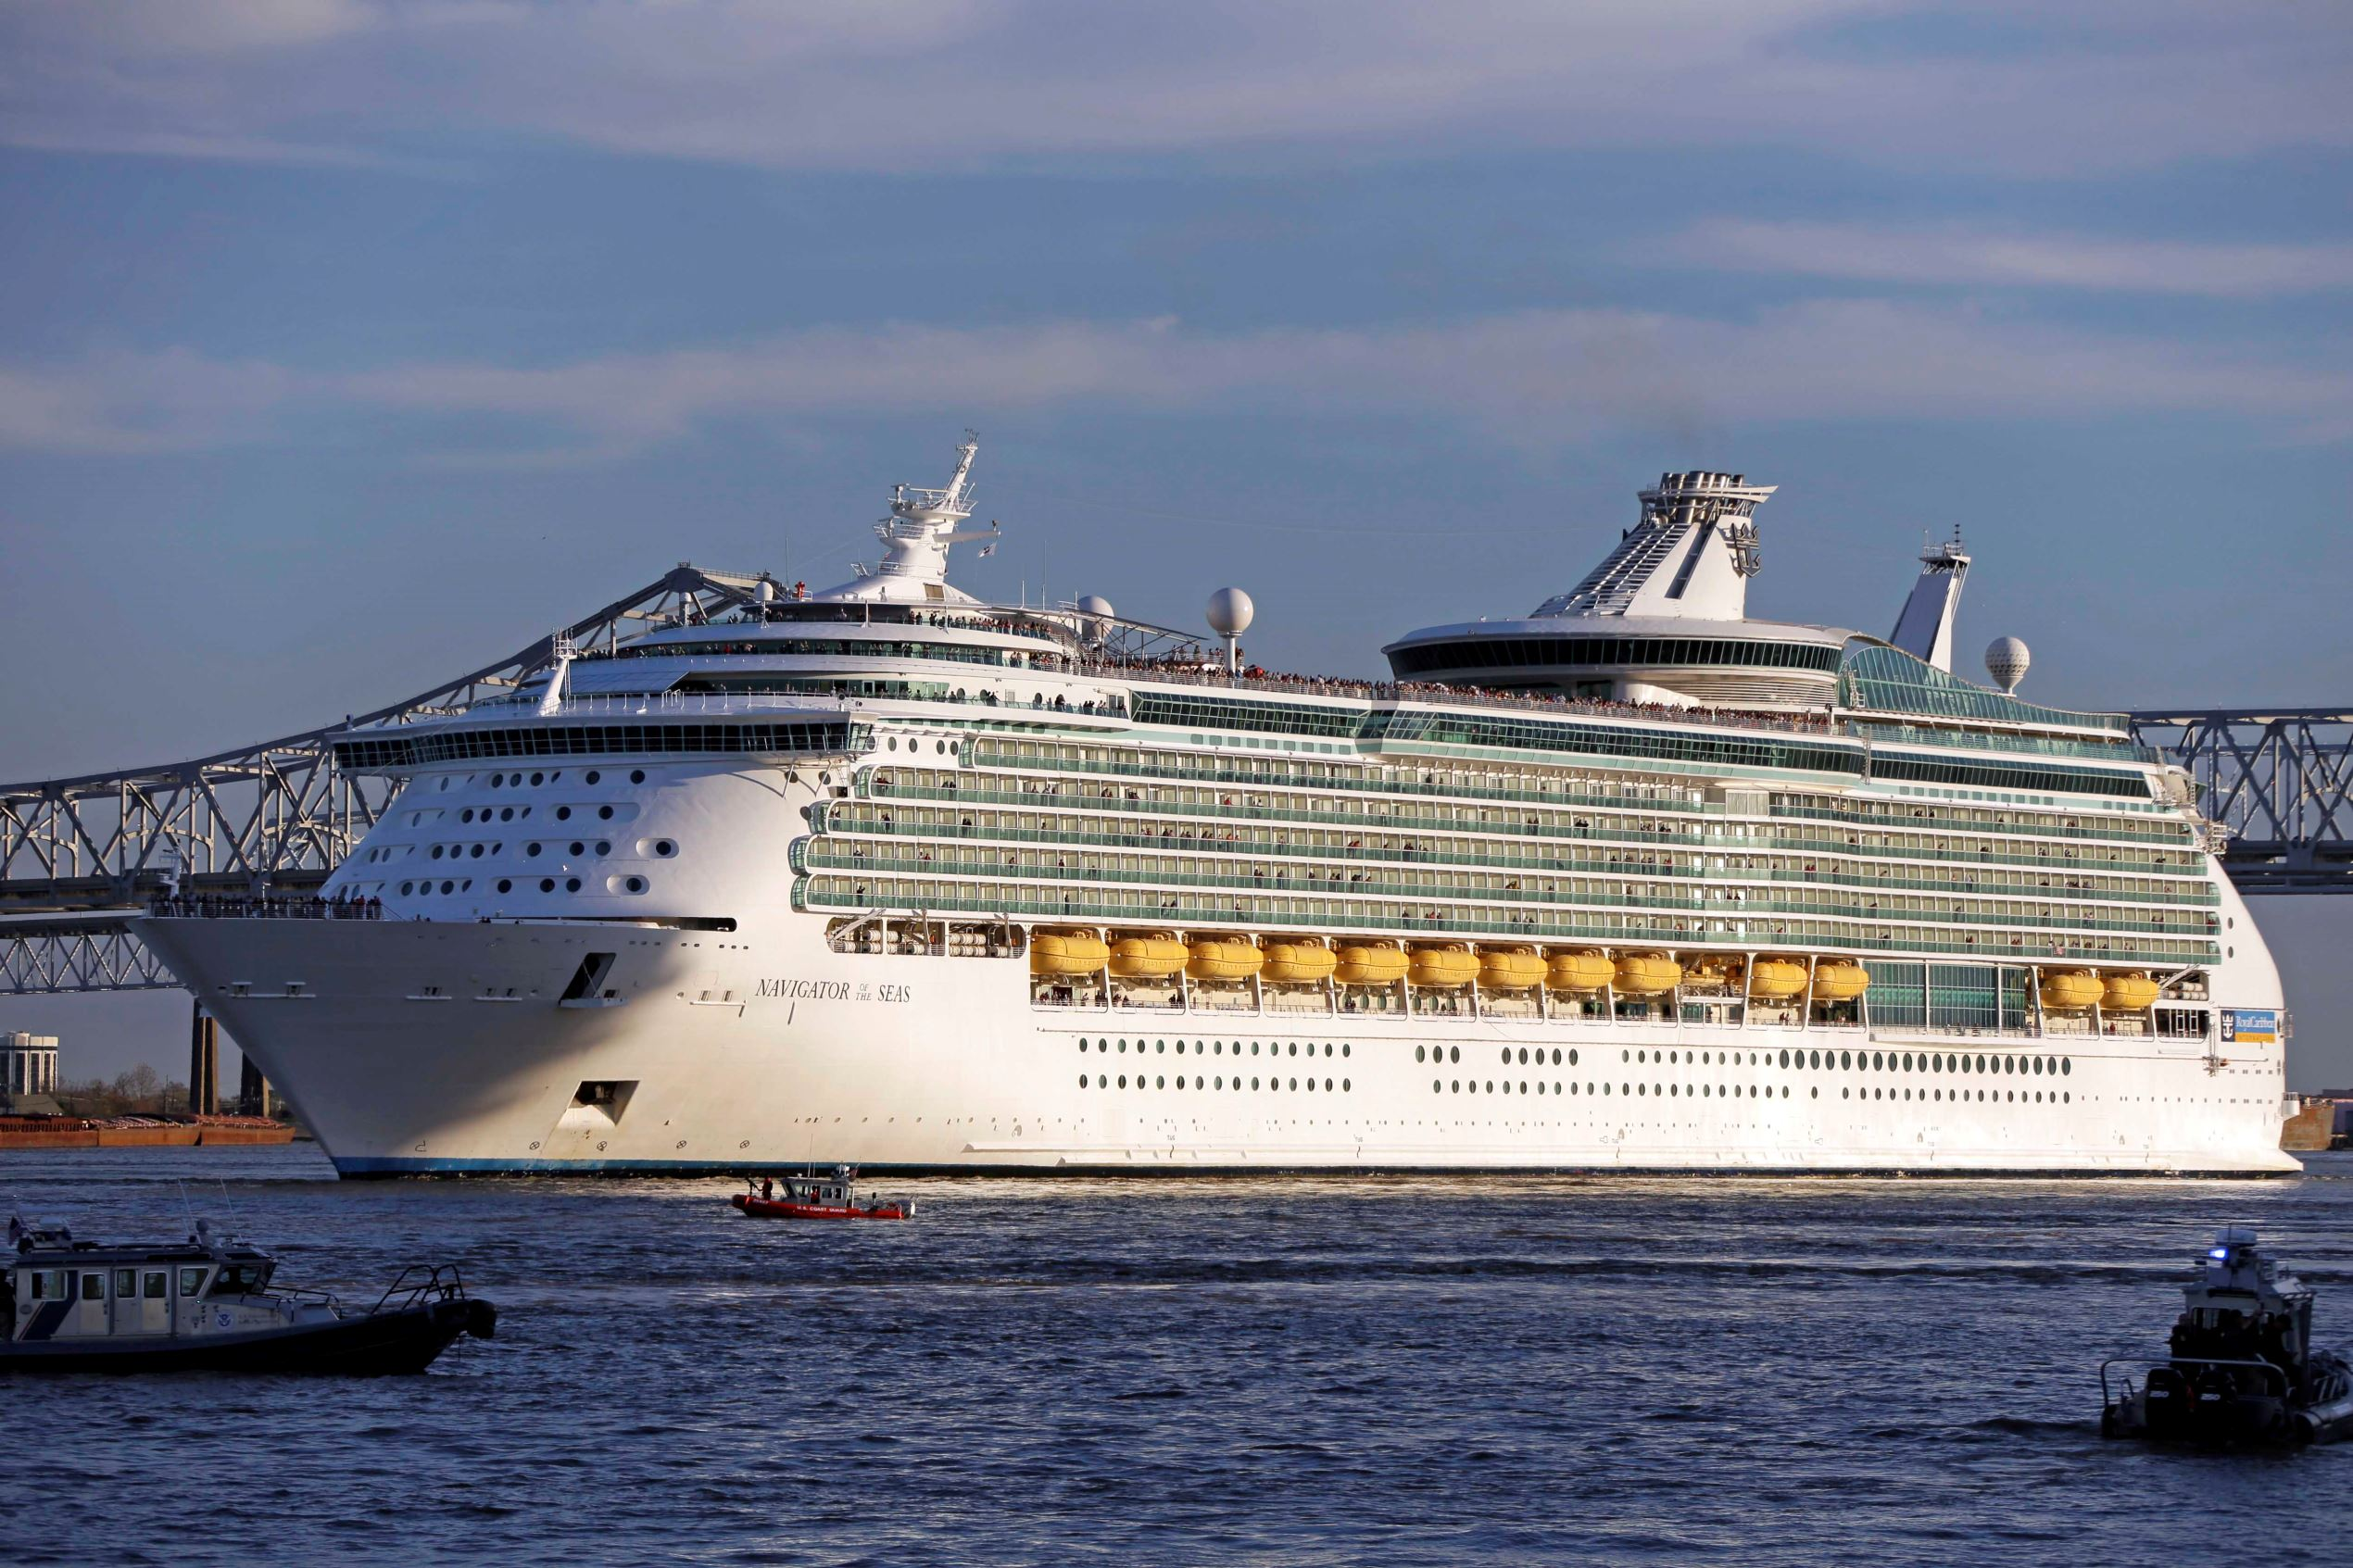 Slide 7 of 31: This photo taken Feb. 2, 2013 shows the Royal Caribbean cruise lines Navigator of the Seas pulls out of New Orleans on the Mississippi River. (AP Photo/Gene J. Puskar)